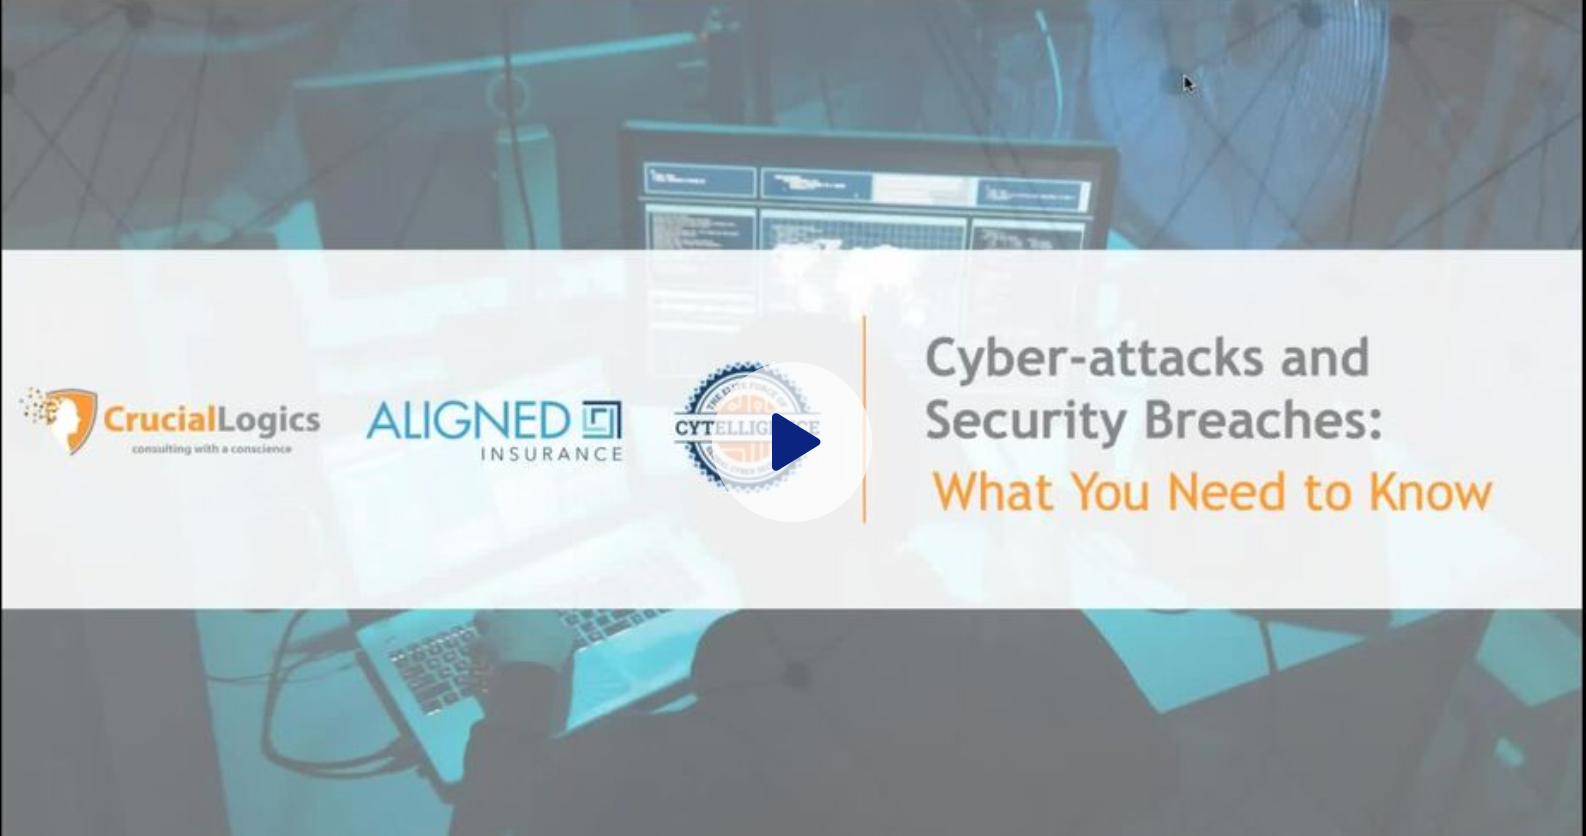 Cyber-attacks and security breaches webinar